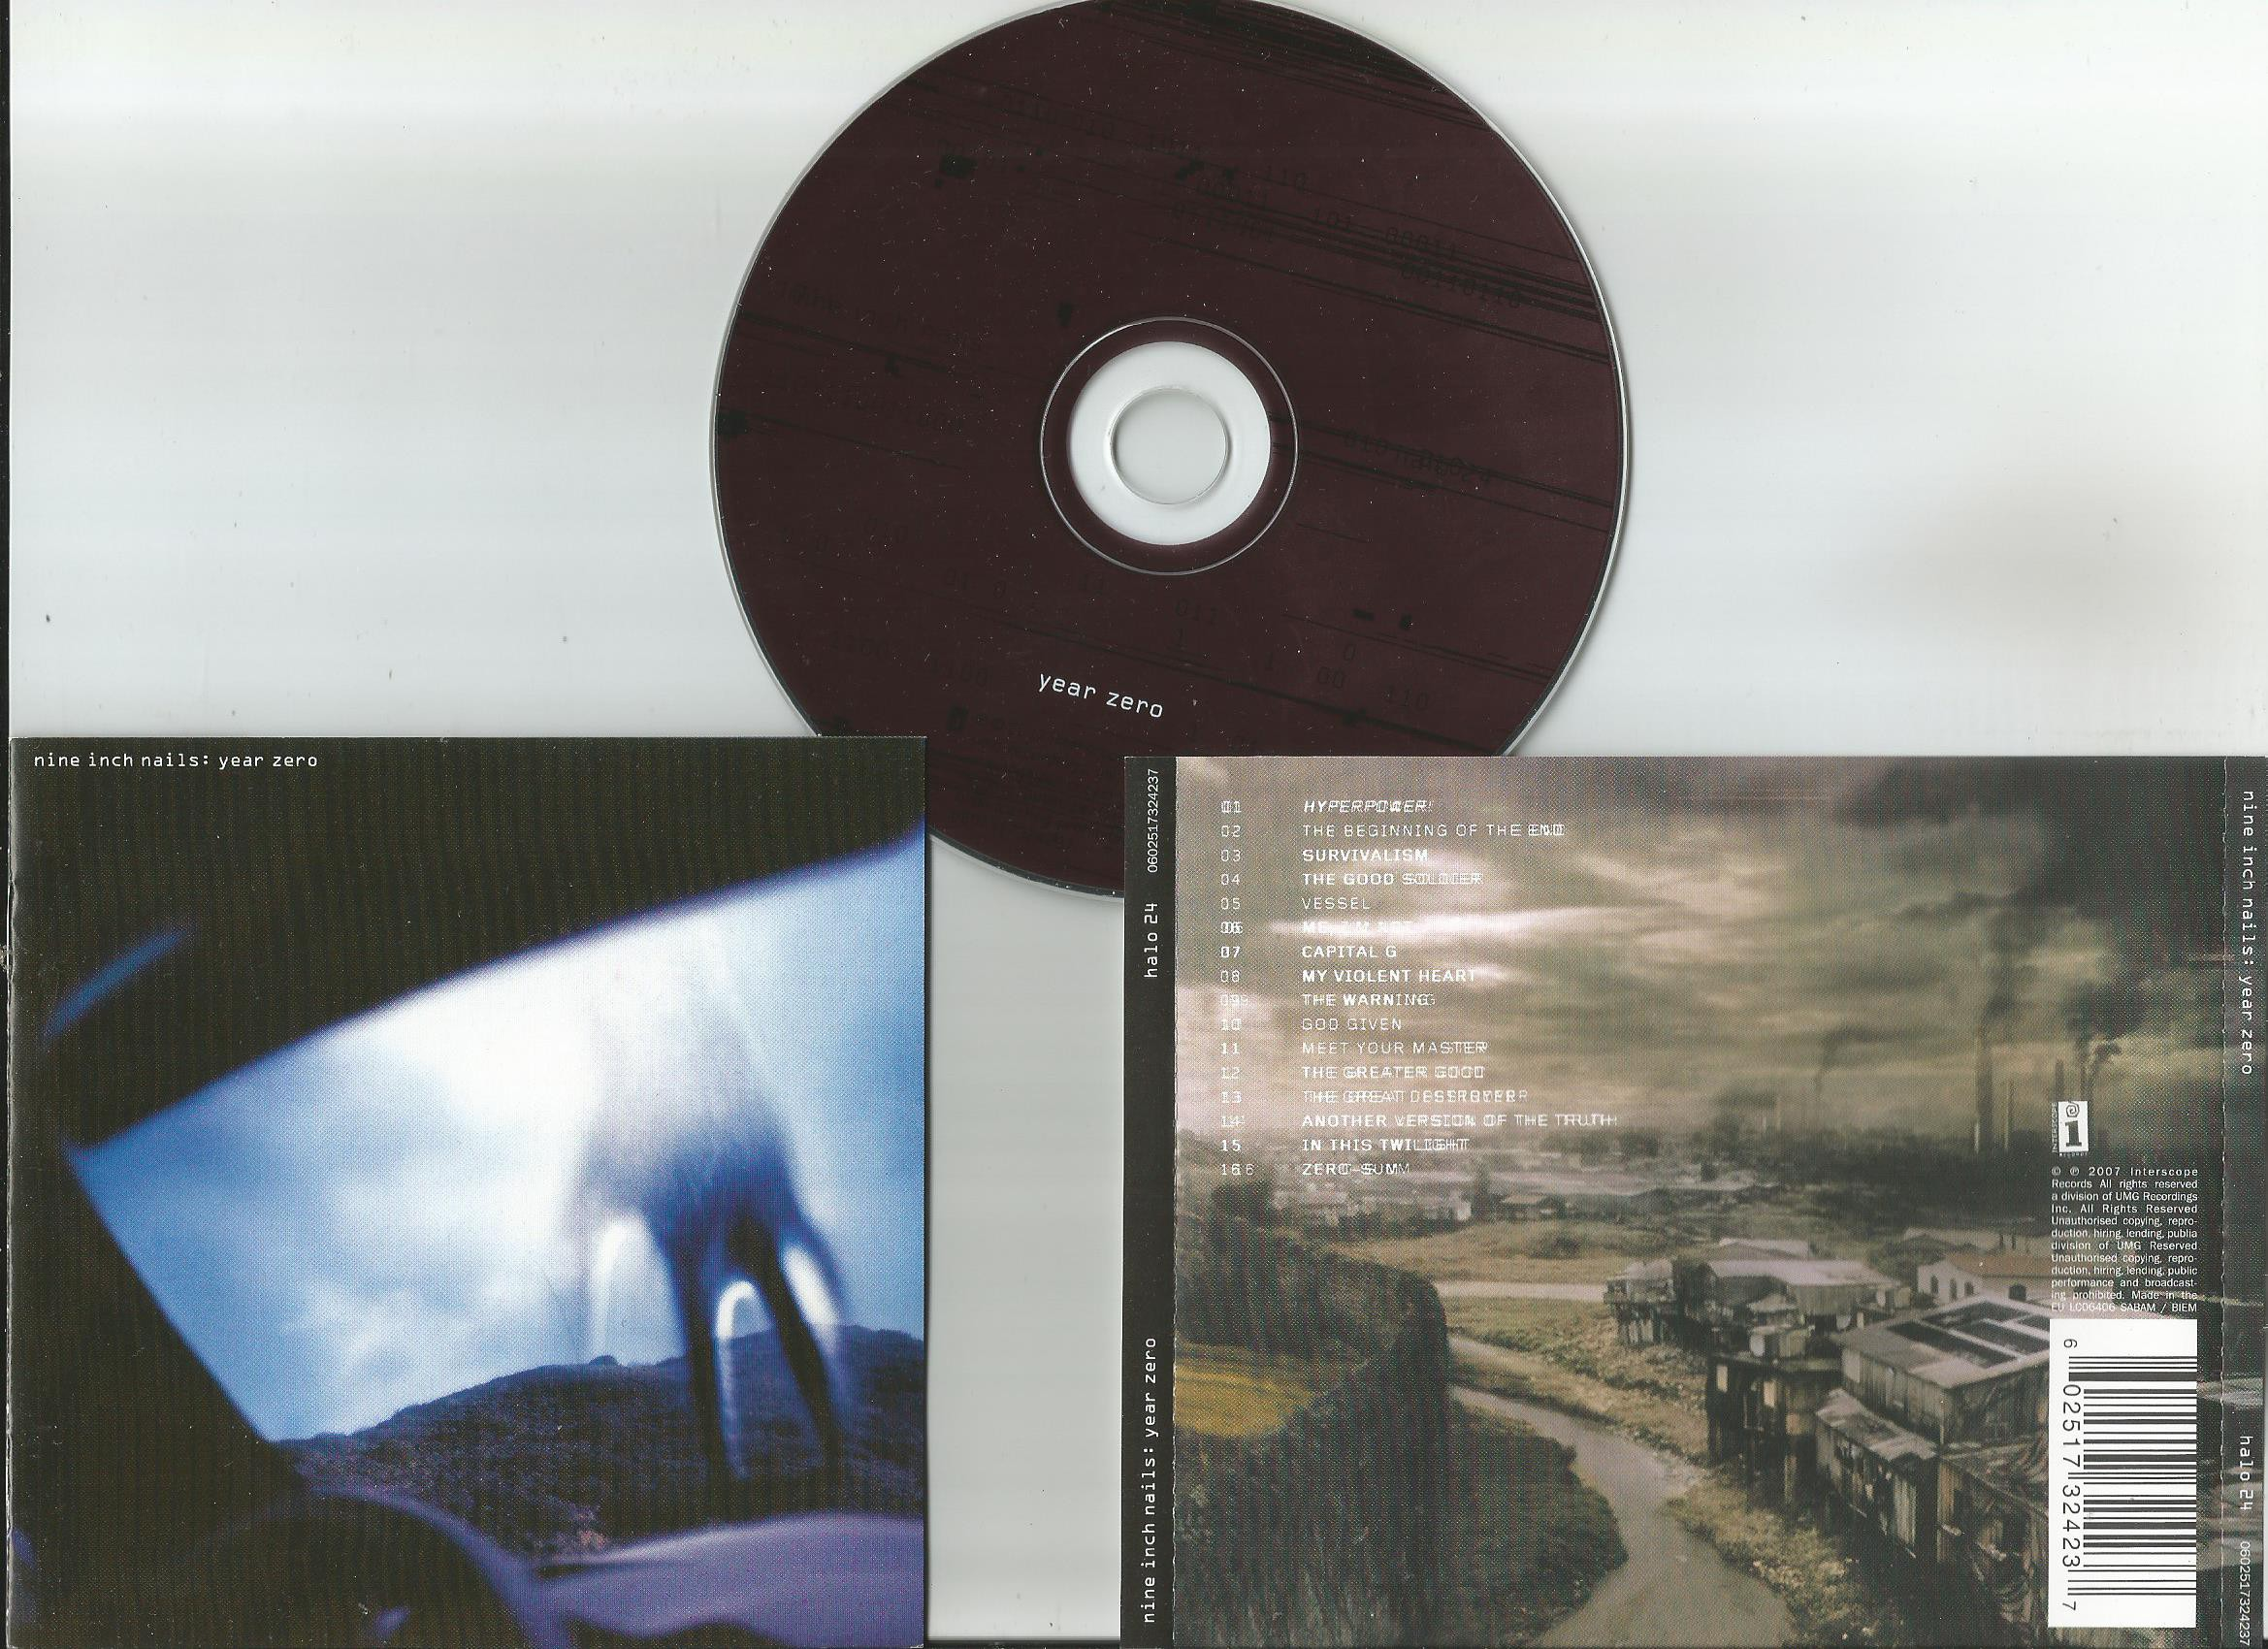 Nine Inch Nails Year Zero Records, LPs, Vinyl and CDs - MusicStack